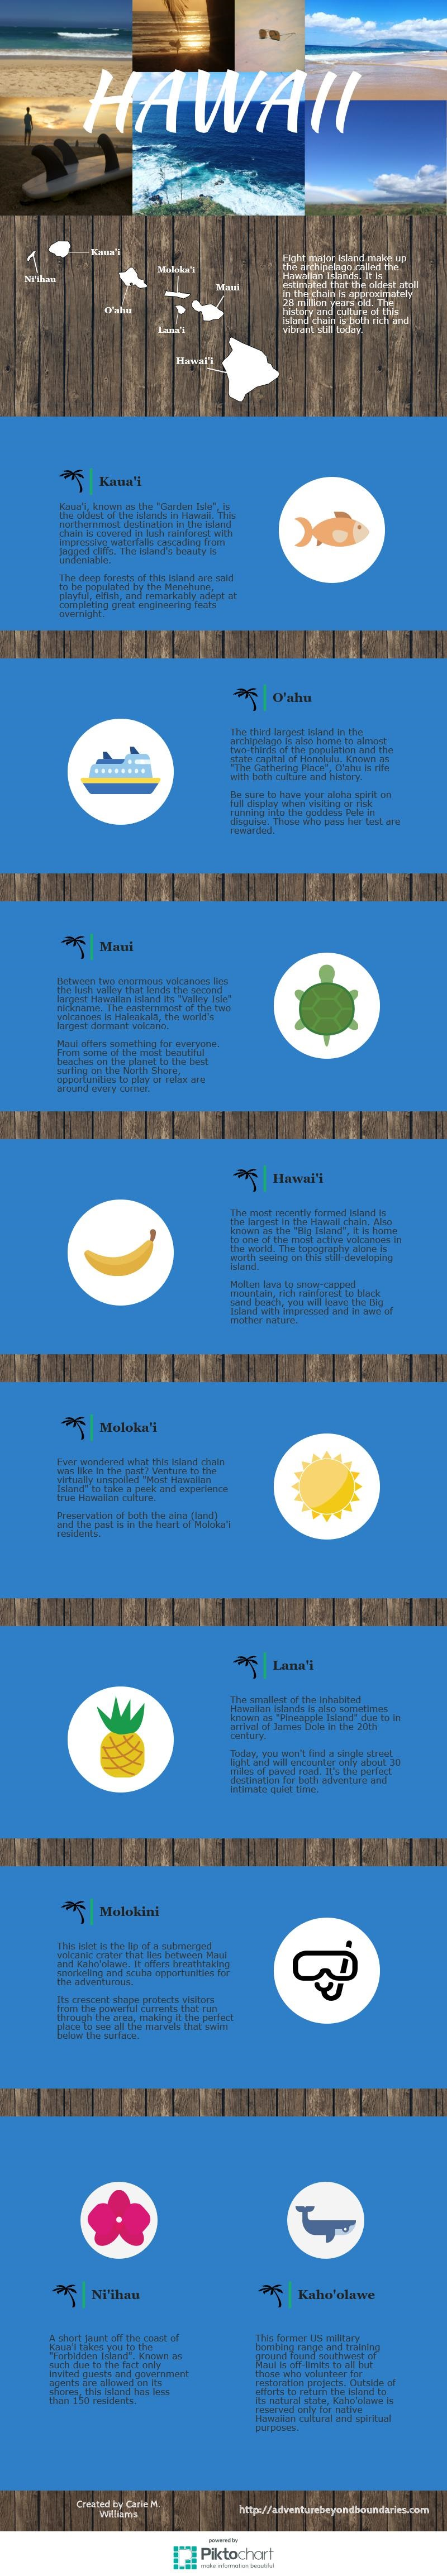 My first infographic